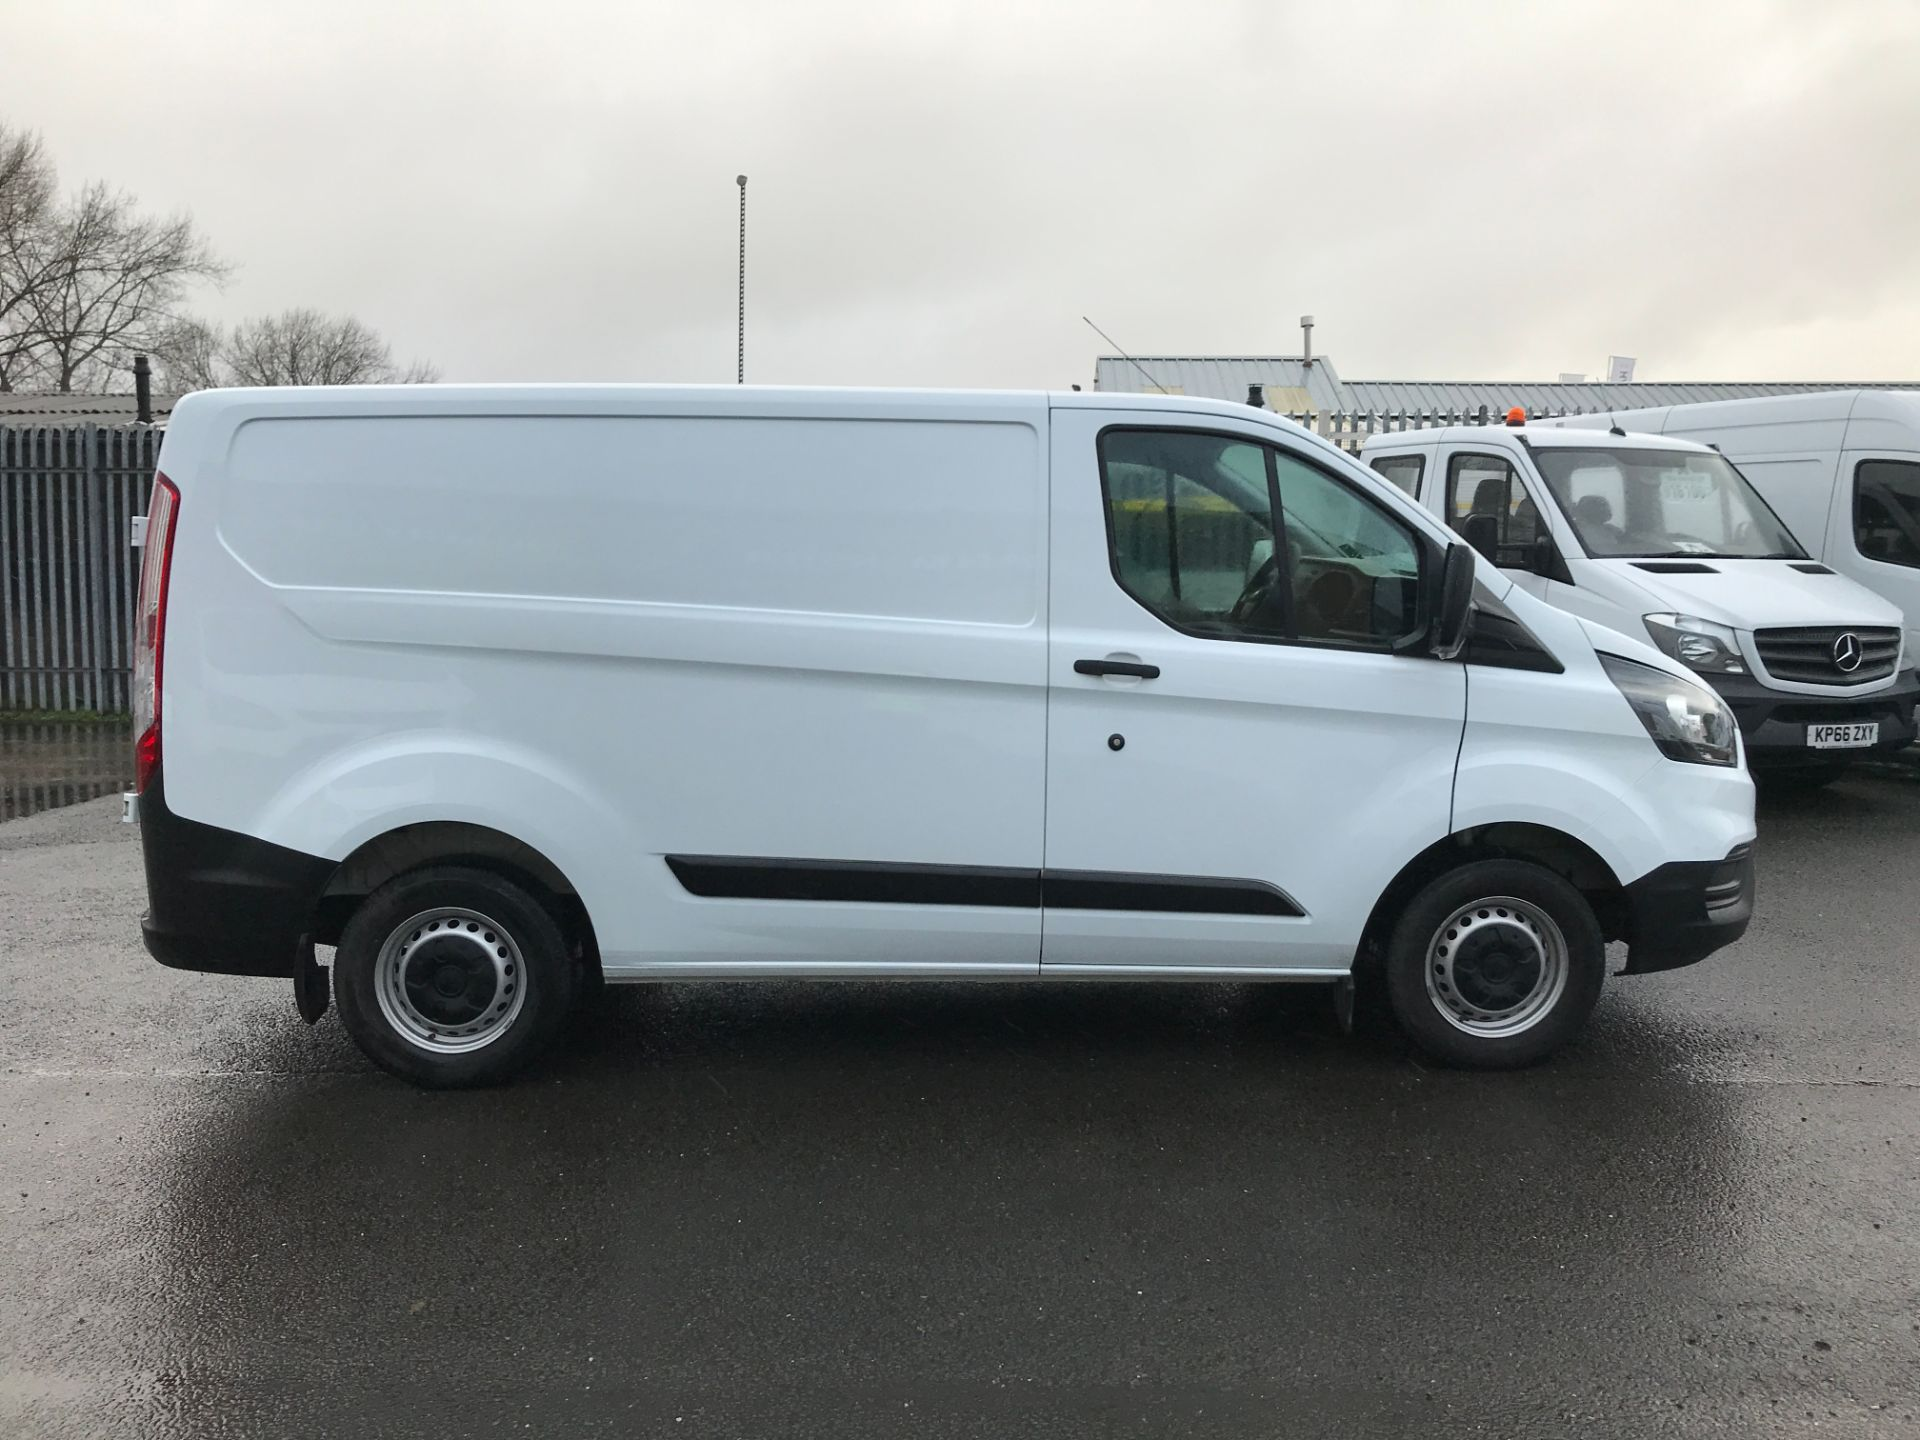 2018 Ford Transit Custom 300 L1 2.0TDCI 105PS LOW ROOF EURO 6 (FP18AZT) Image 4